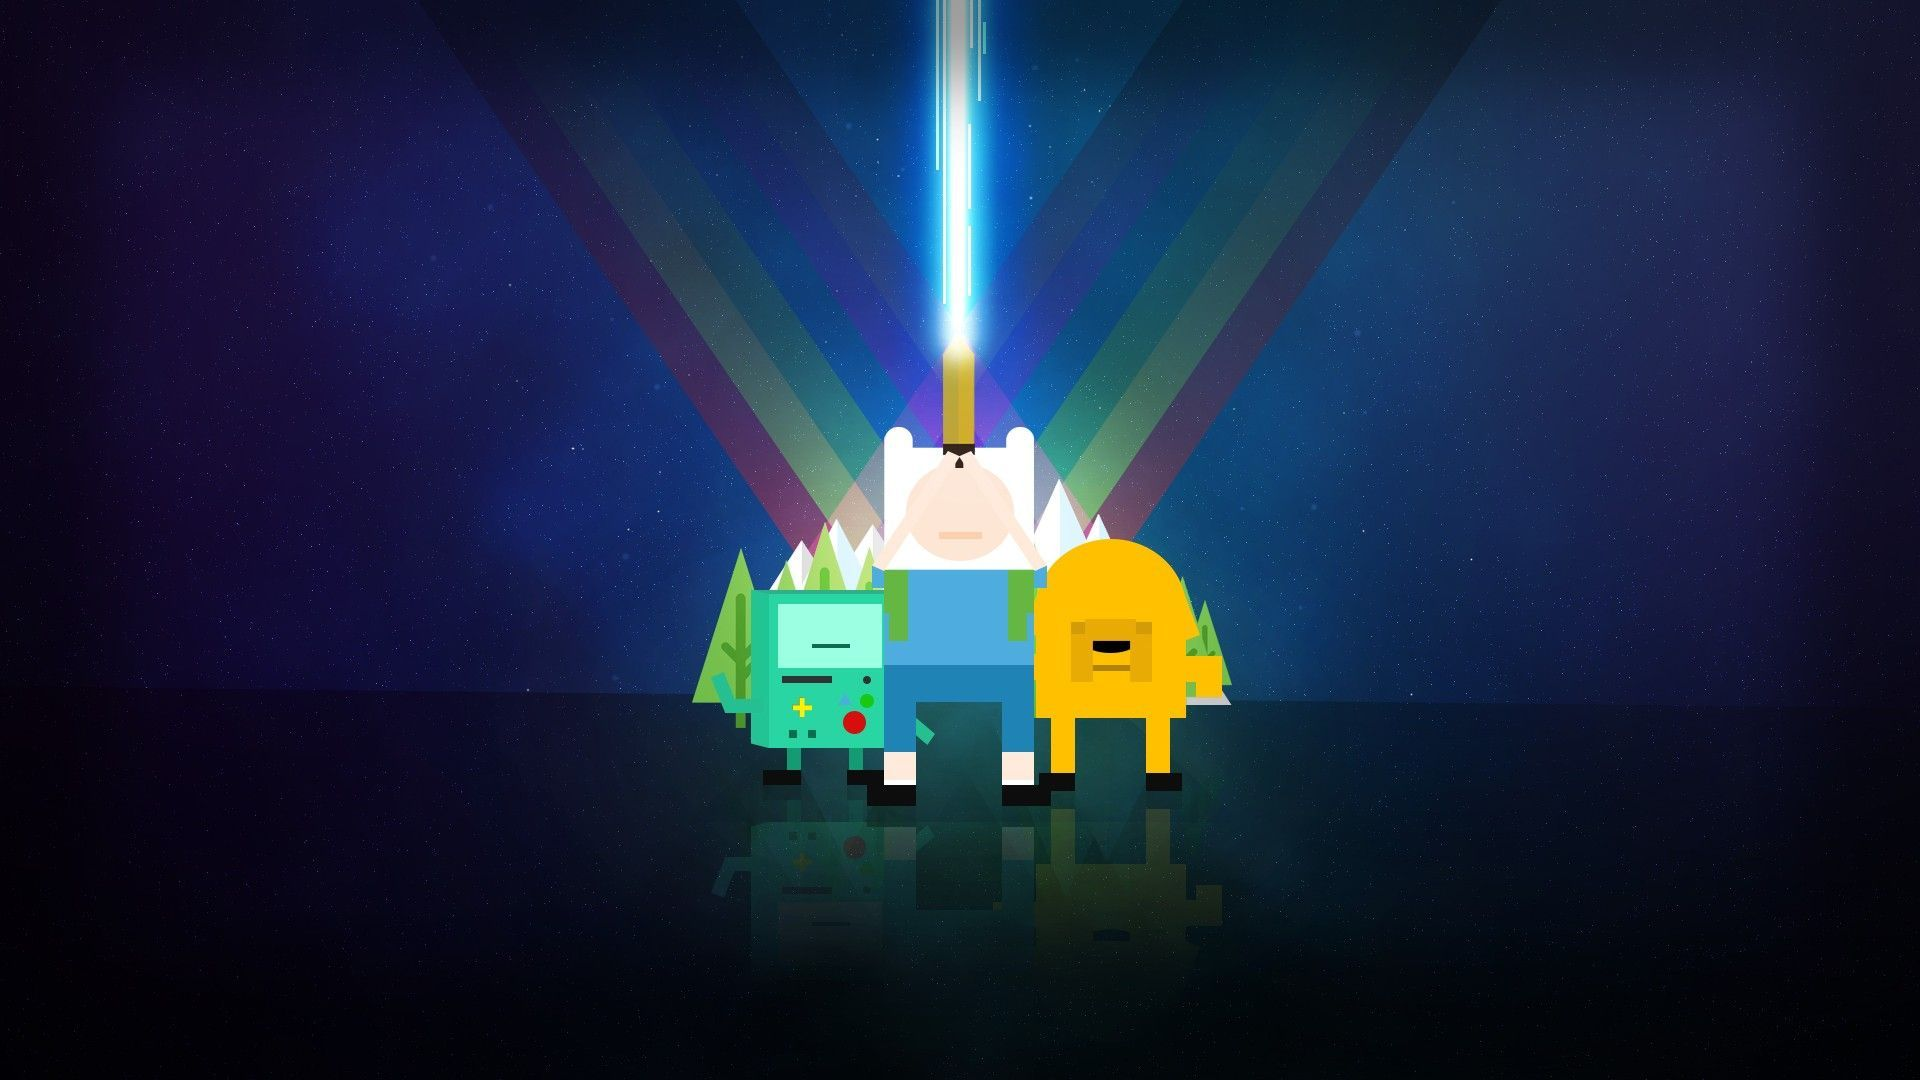 Adventure Time Wallpapers Hd Adventure Time Wallpaper Desktop Wallpaper 1920x1080 Adventure Time